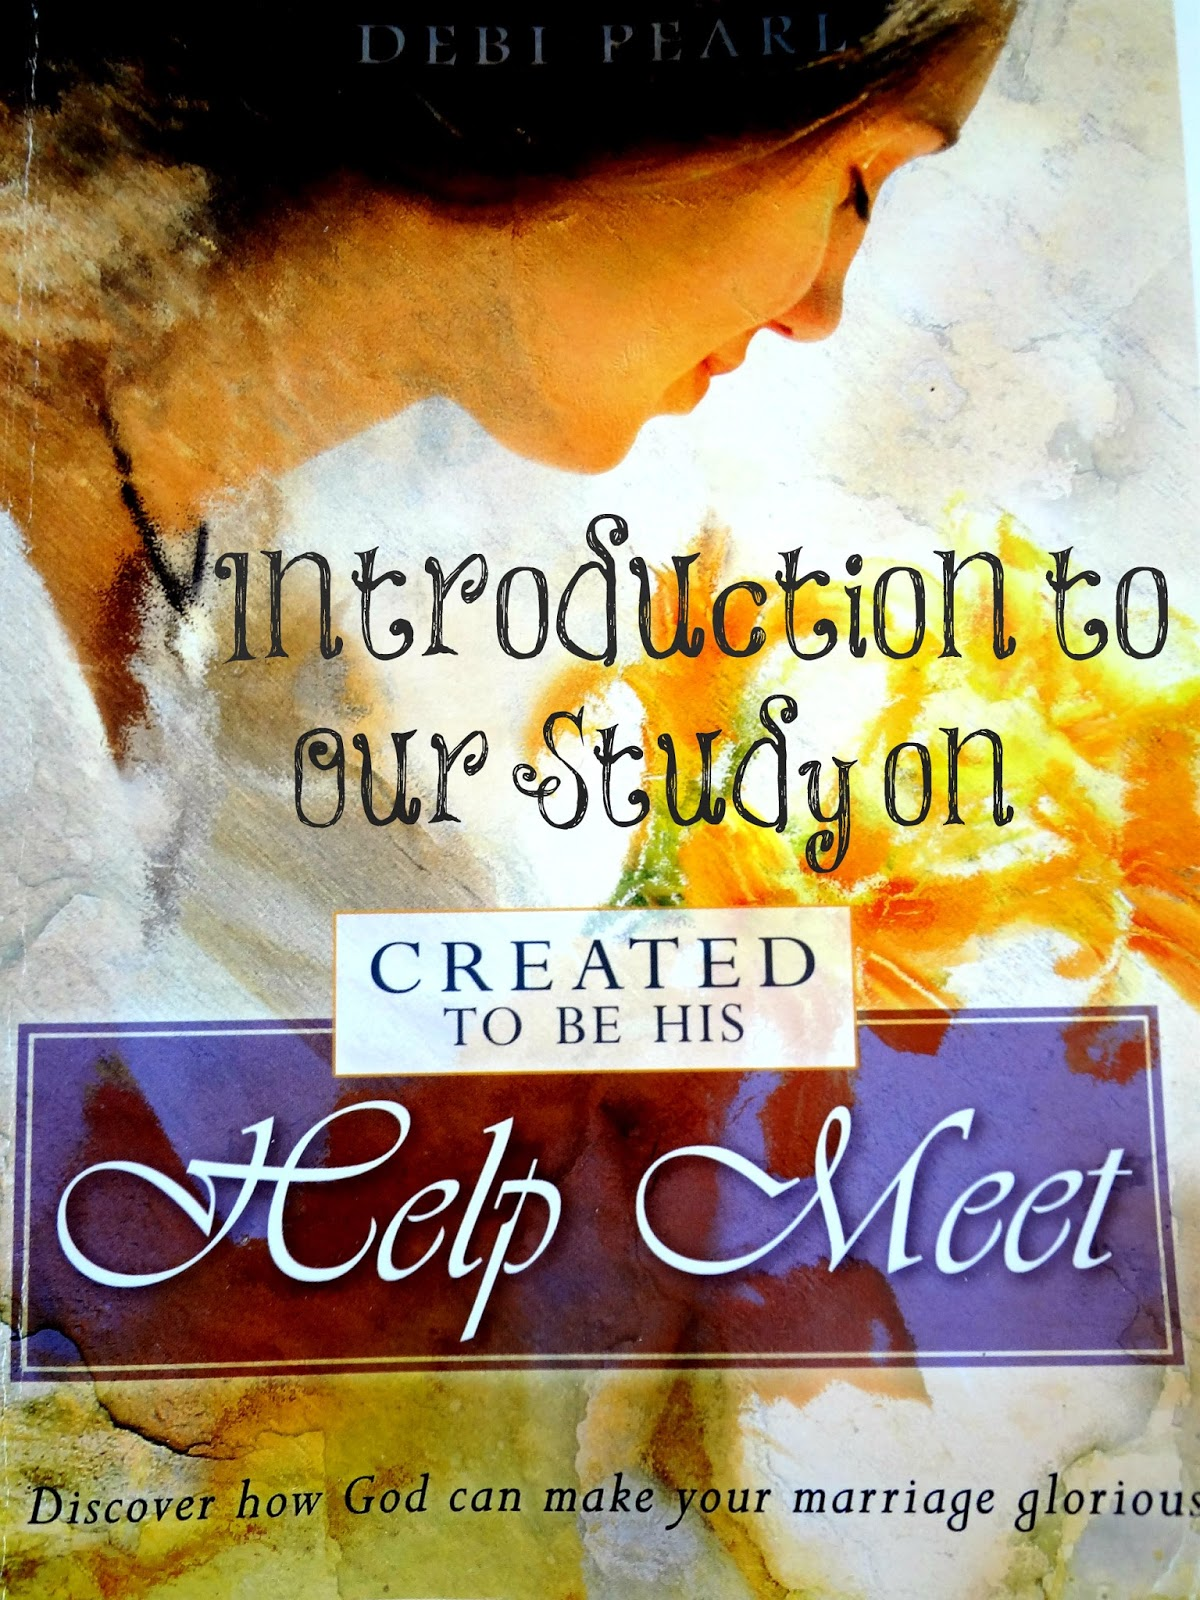 created to be his help meet